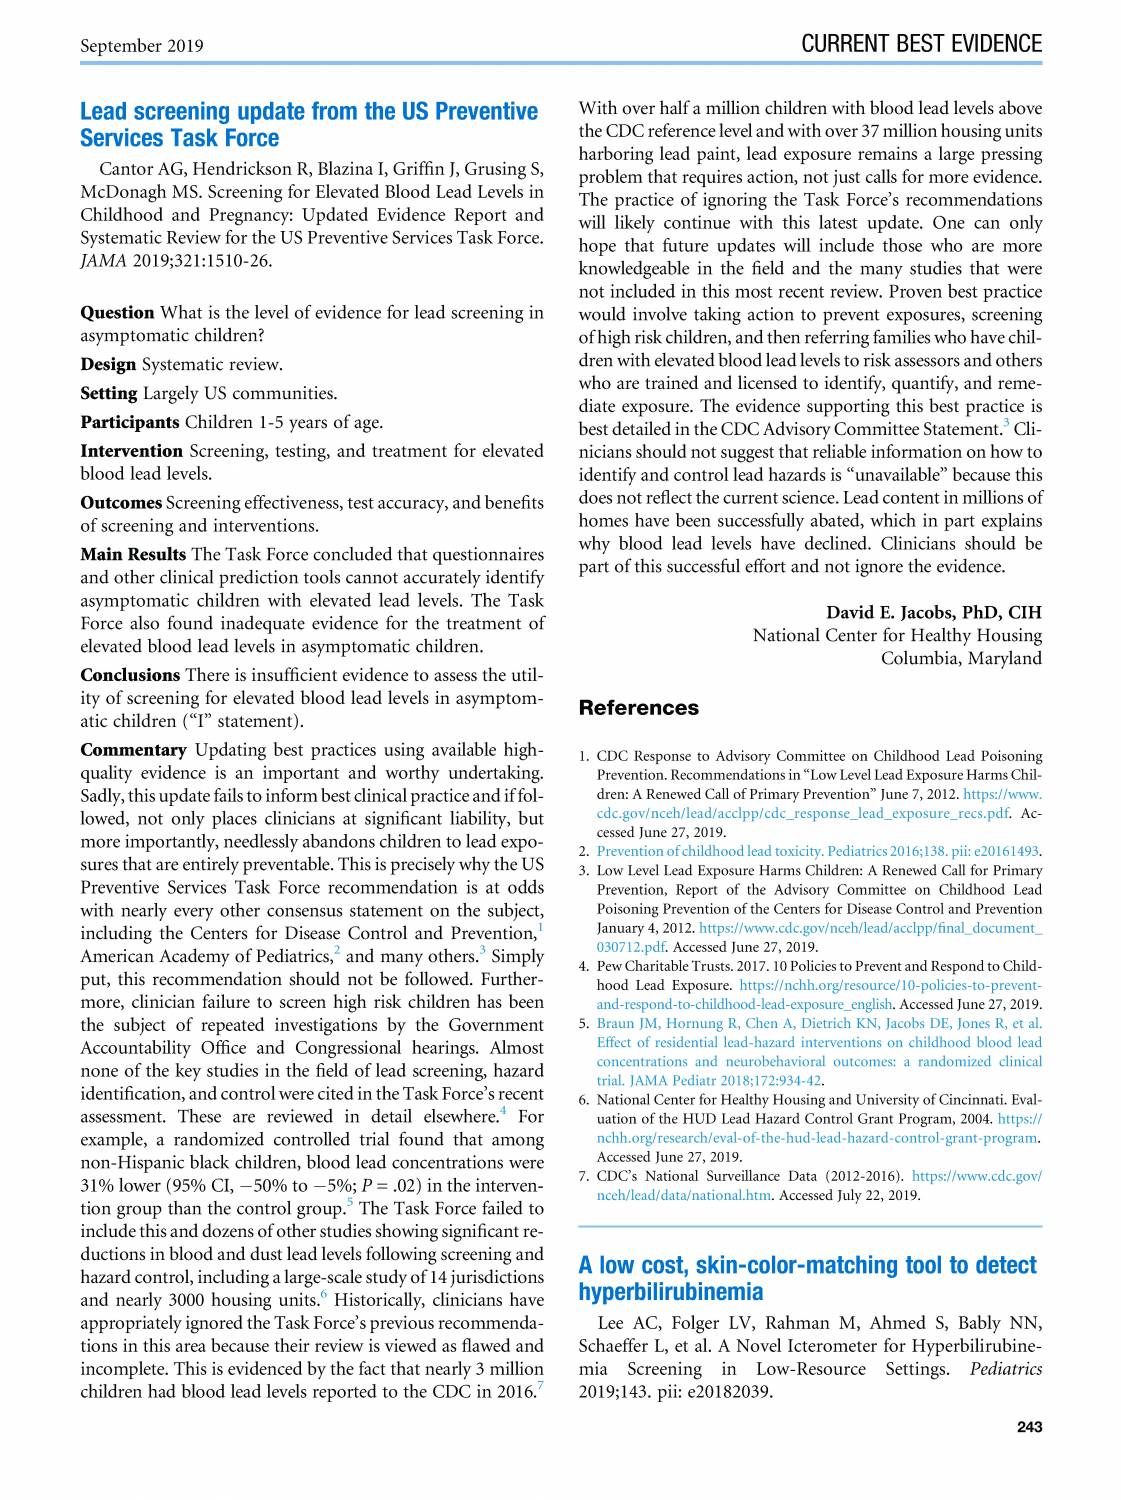 Article: Lead Screening Update from the US Preventive Services Task Force